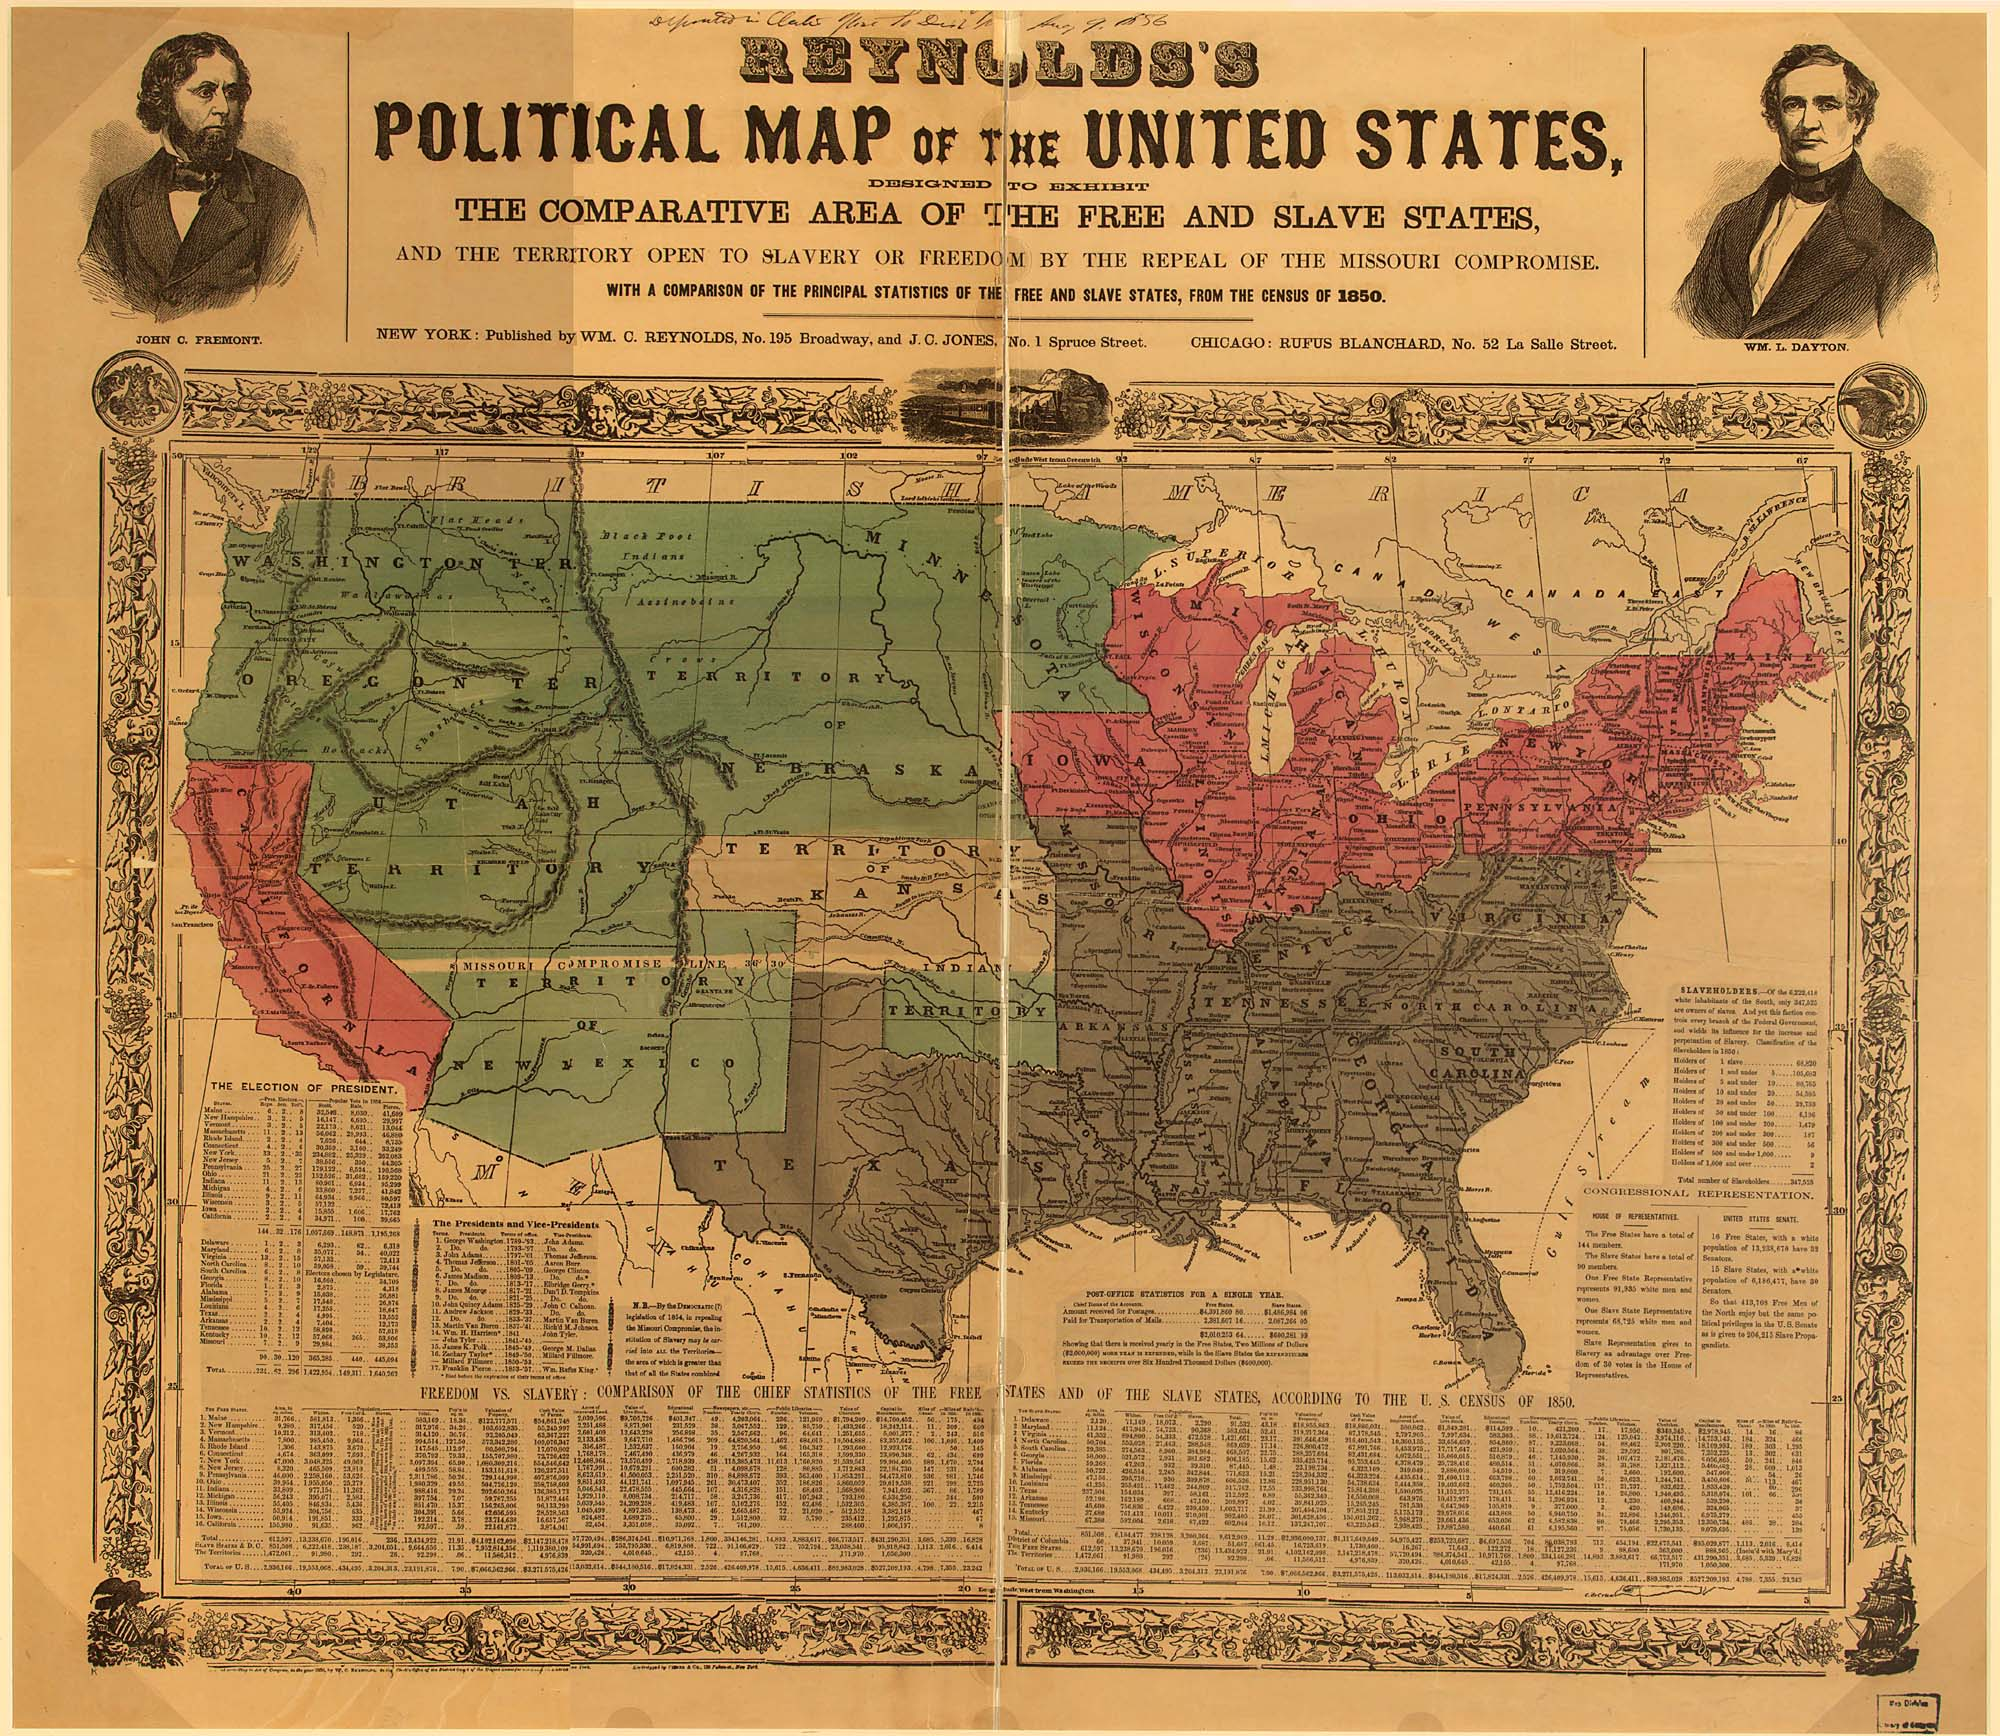 The Battle Over Slavery Pictures Slavery In America HISTORYcom US - Map of us in 1860 free and slave states